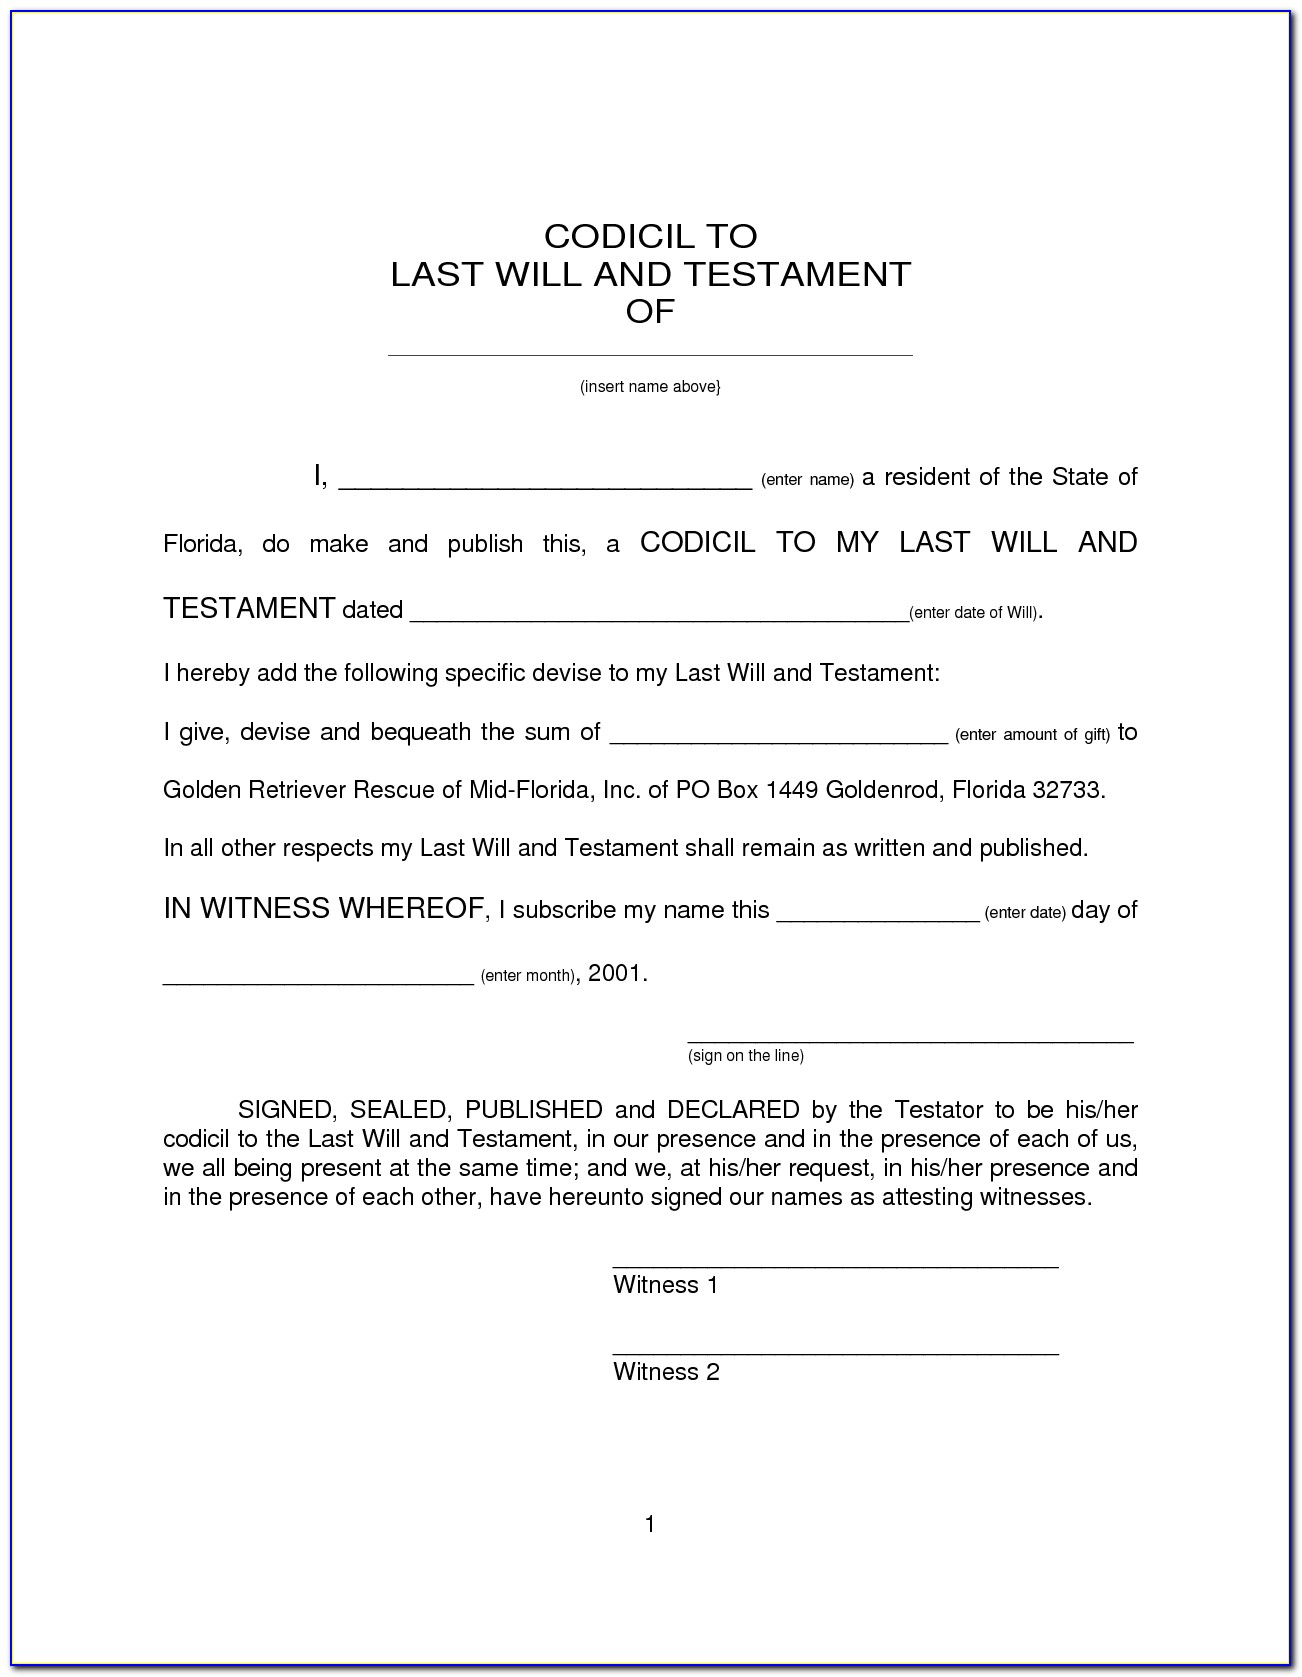 Last Will And Testament Template (6) | Best Agenda Templates Within Last Will And Testament Blank Forms